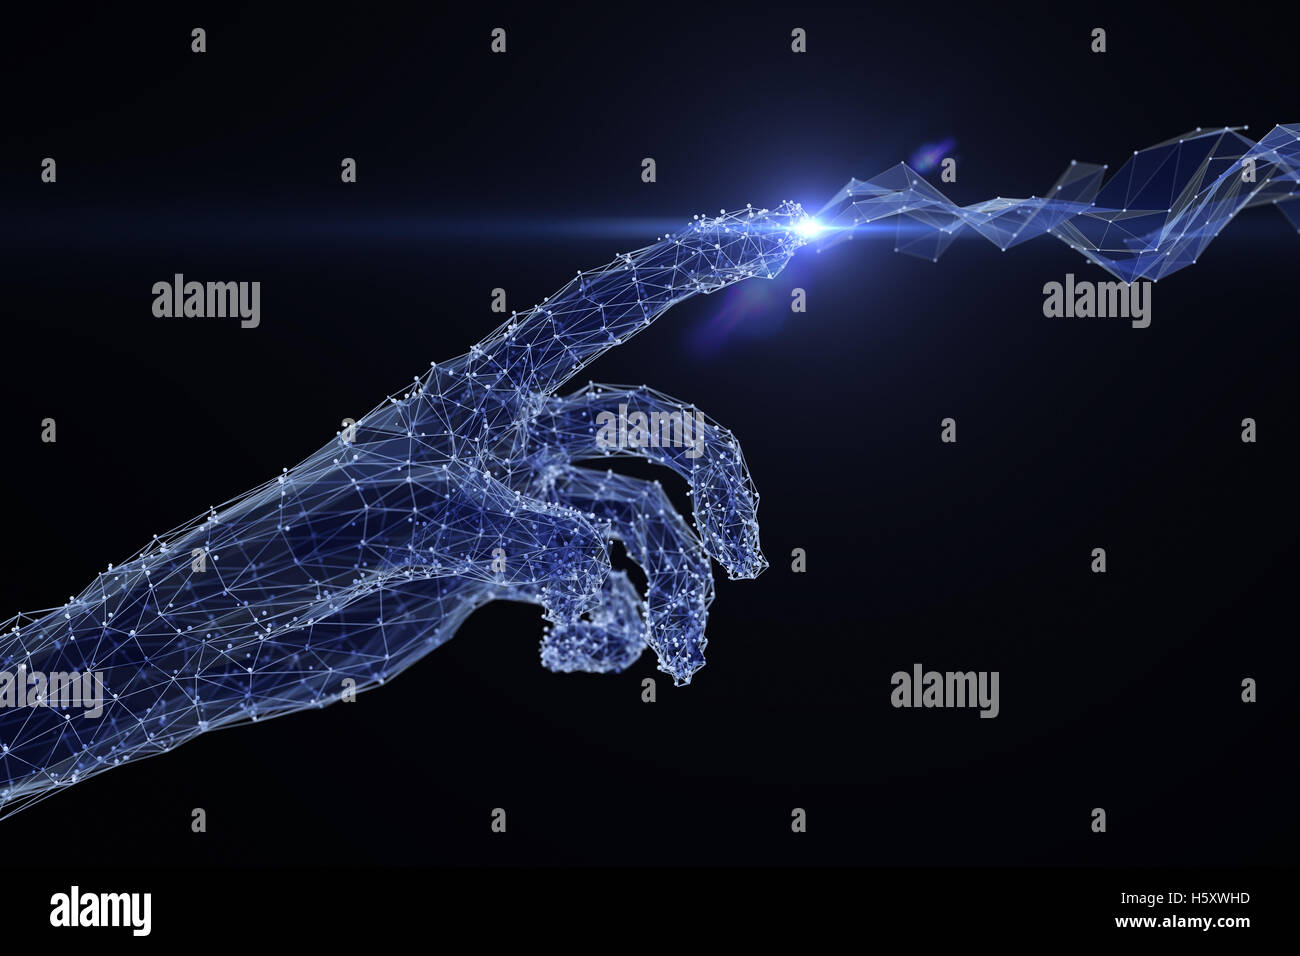 Digital hand touching the network - Stock Image